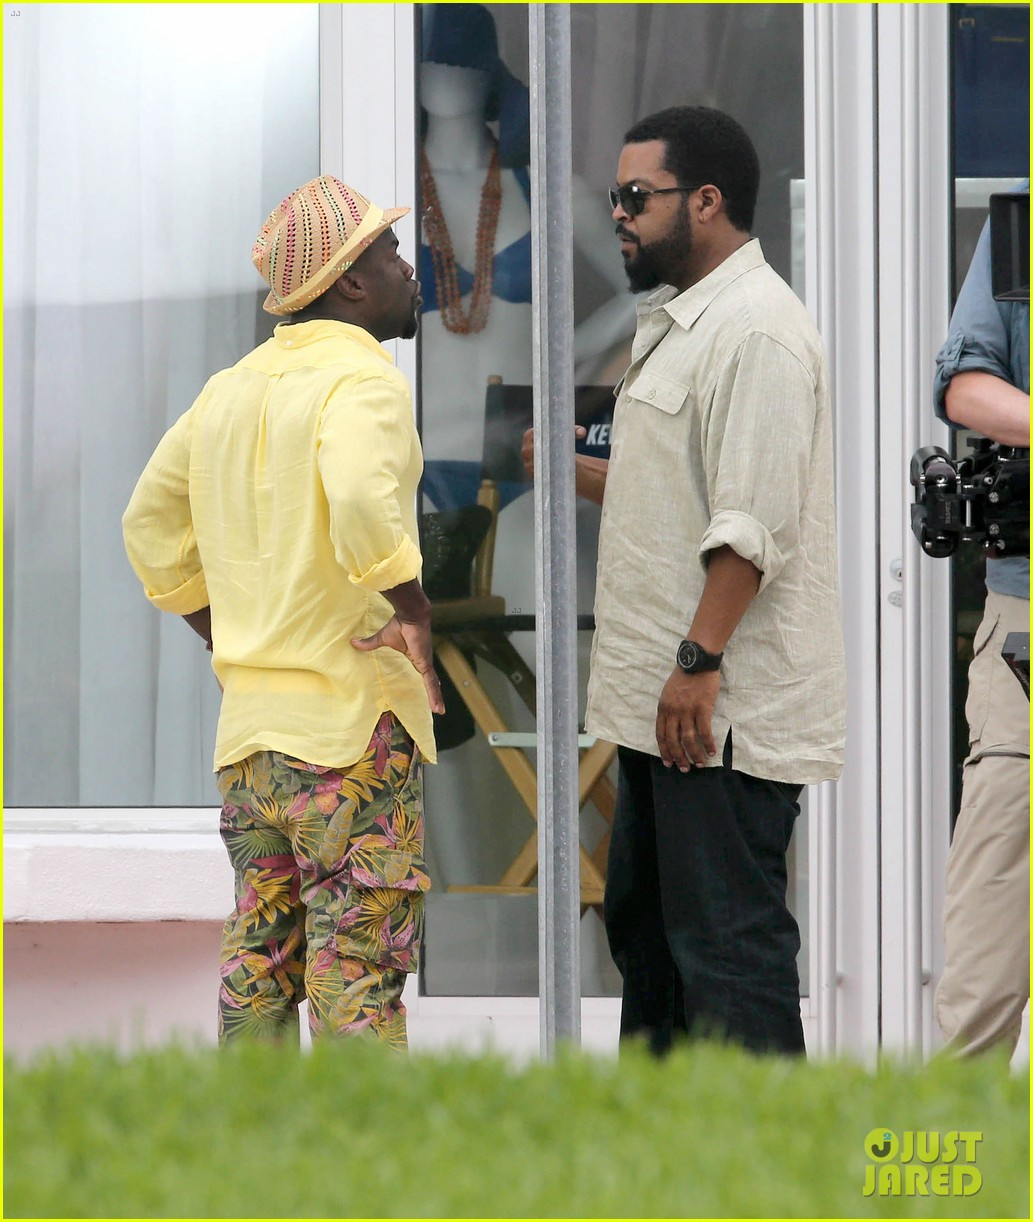 kevin hart begins filming ride along 2 with ice cube in miami 073152174